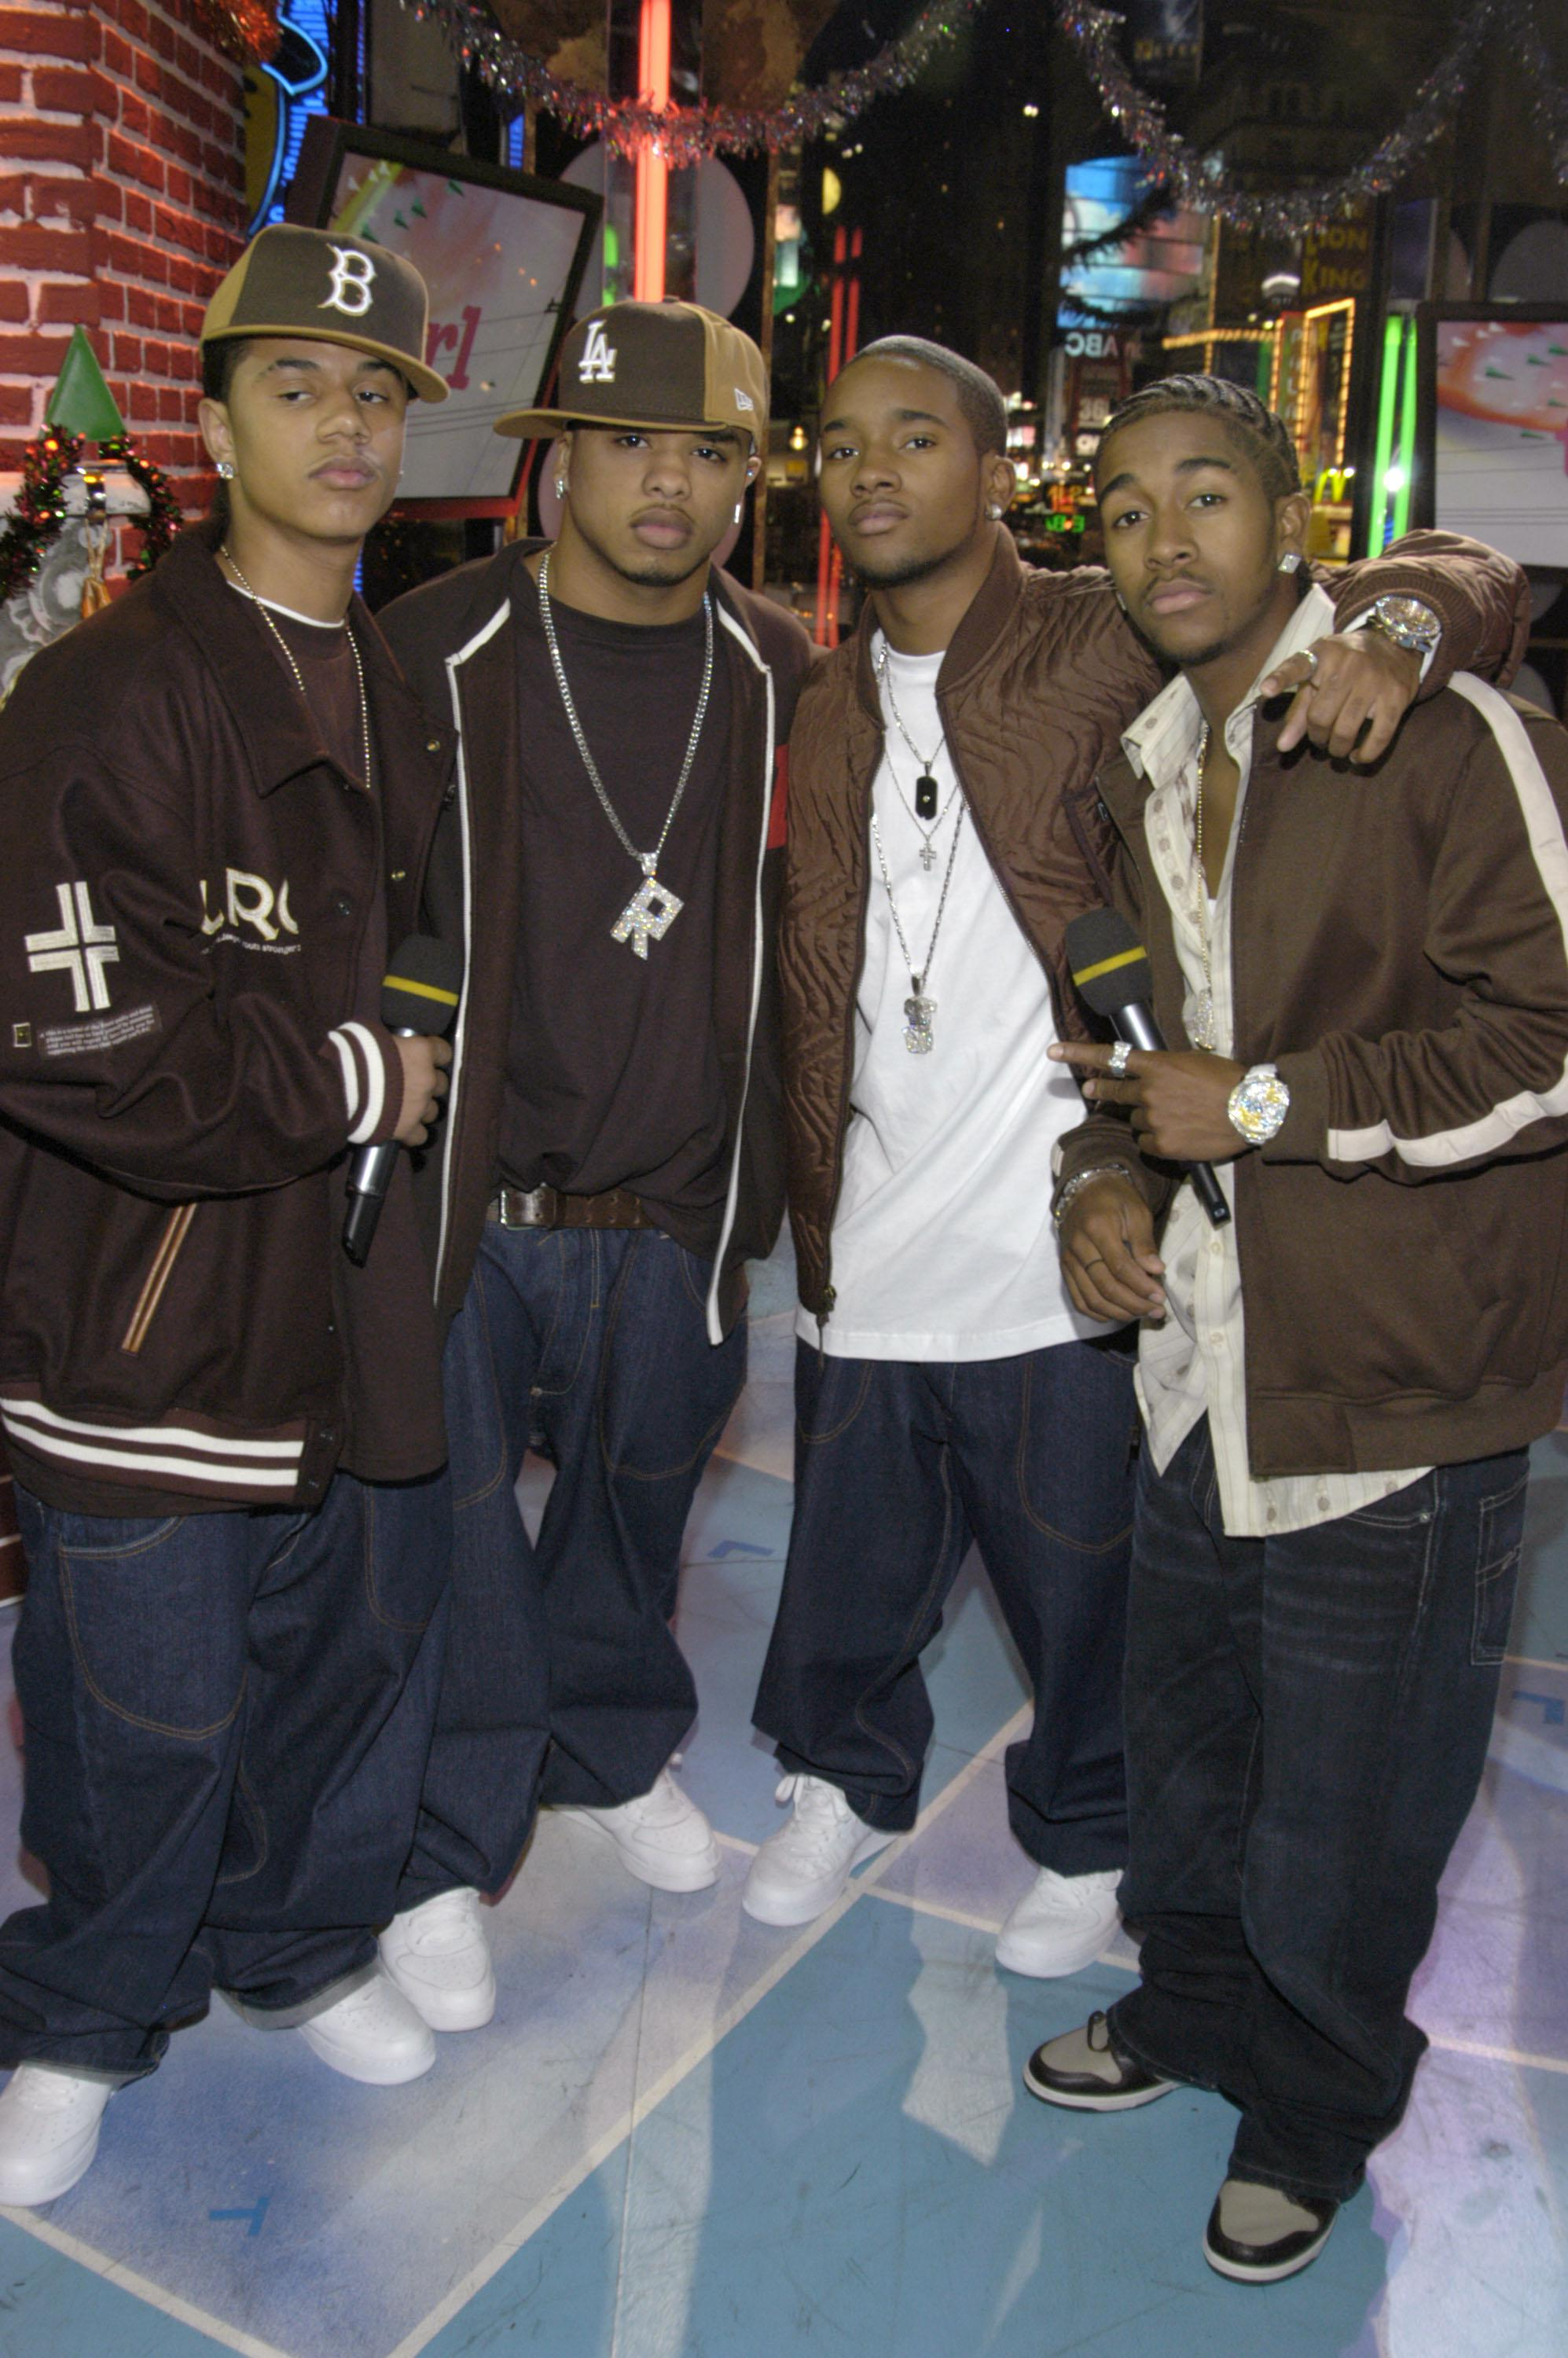 The Cast of 'Mona Lisa Smile' and B2K Visit MTV's 'TRL' - December 17, 2003